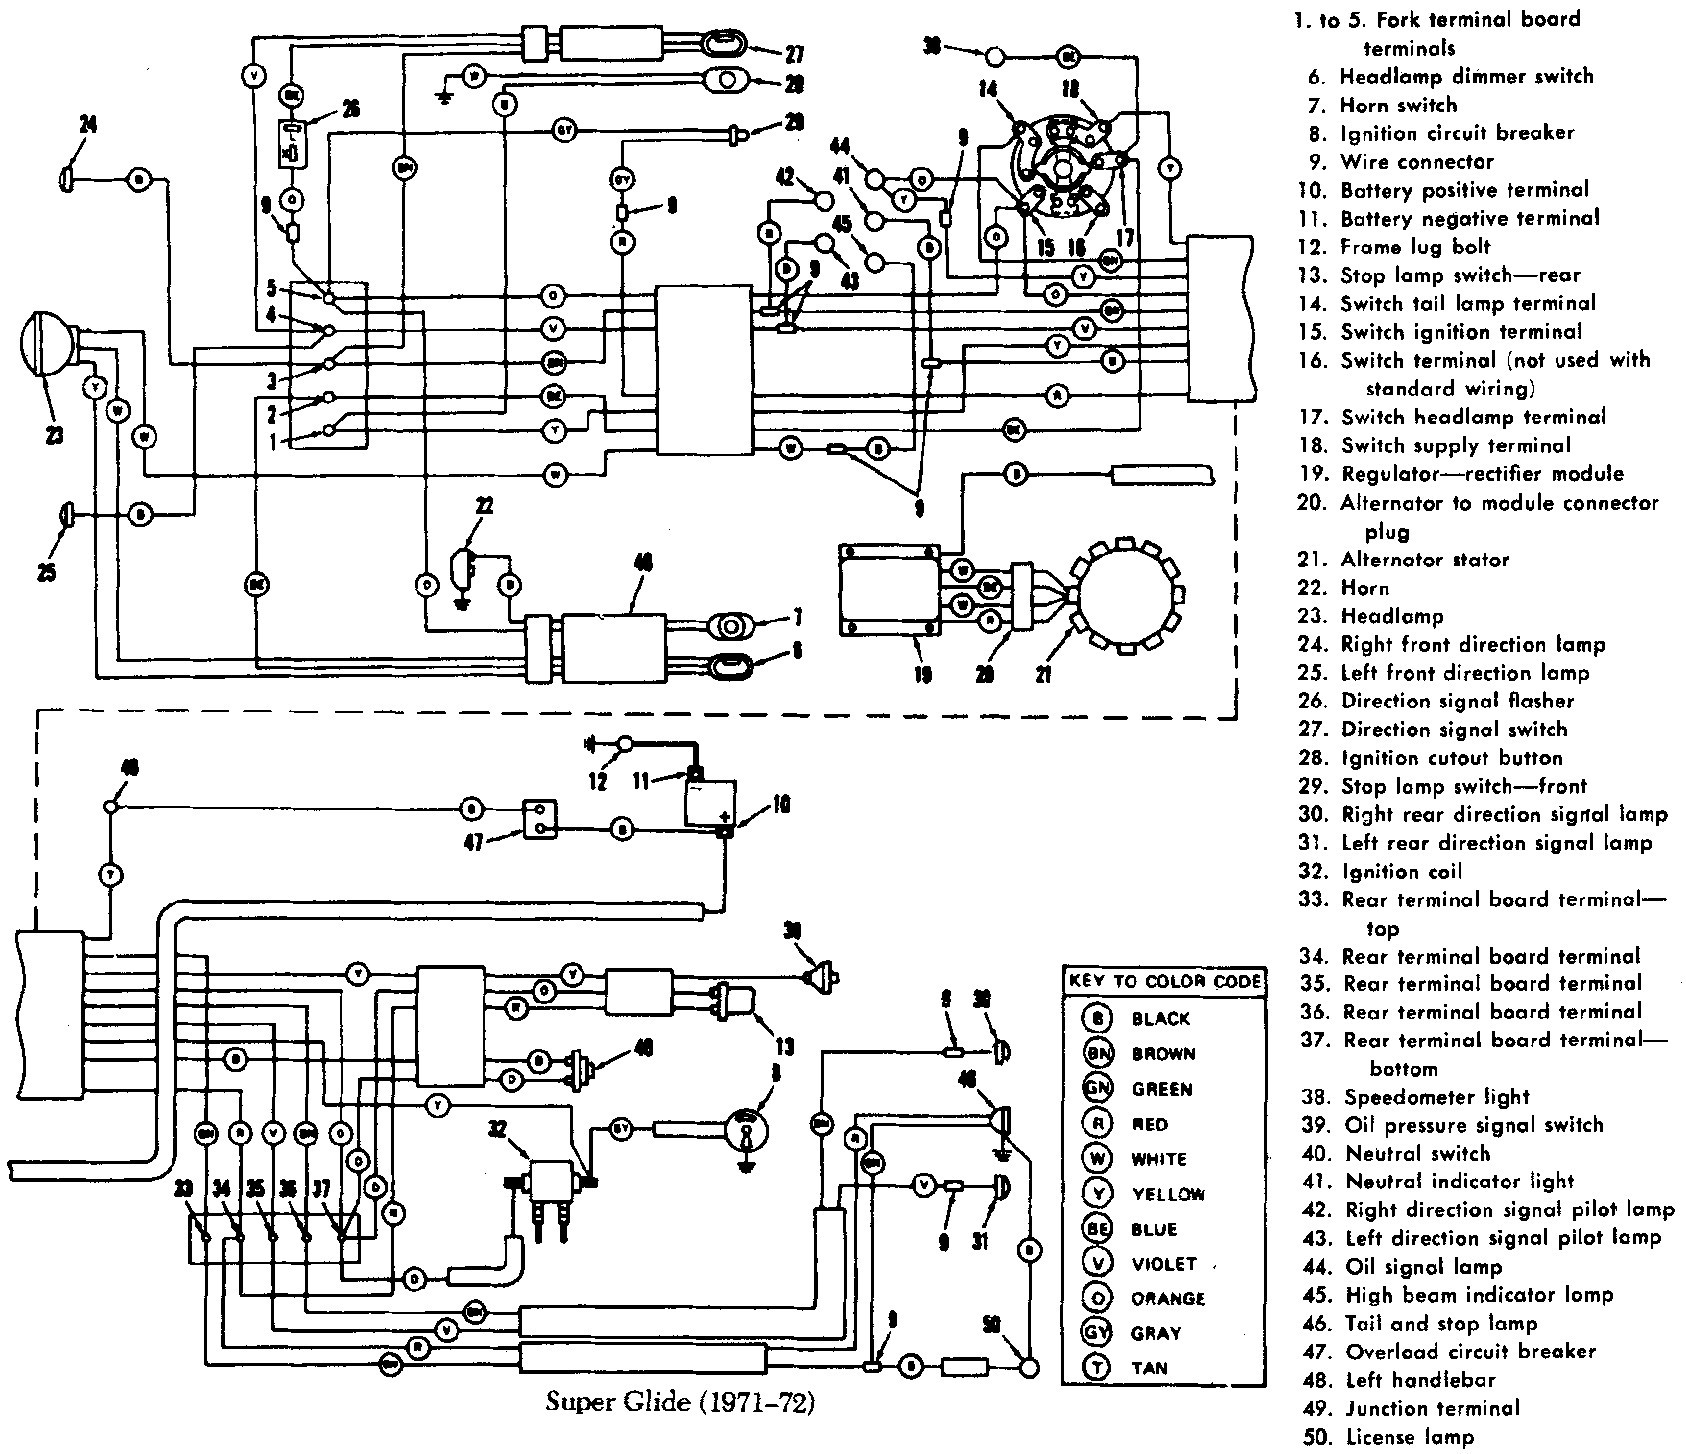 Harley Davidson Softail Wiring Diagram 1998 Html furthermore 620sh 1966 1969 Harley Fhl Wiring Diagram further 2001 Dyna Wide Glide Wiring Diagram moreover Harley Davidson Street Glide Wiring Diagram further Manuals diagrams. on 2002 dyna glide wiring diagrams